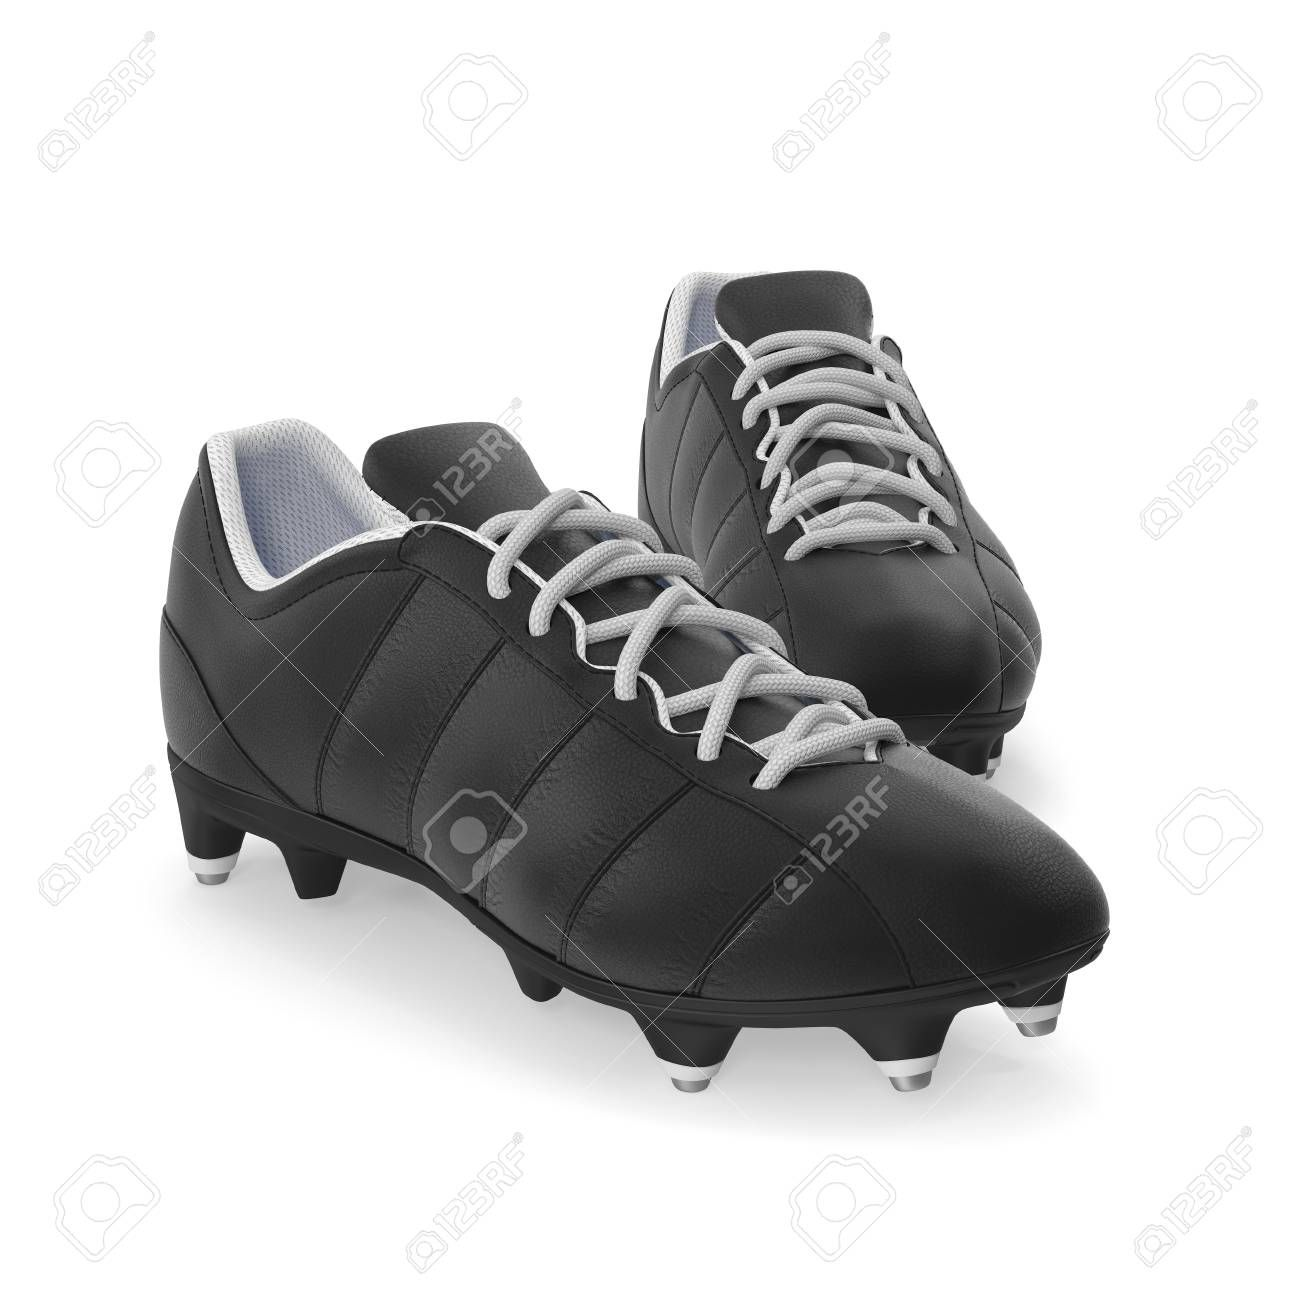 Outdoor Soccer Cleats Shoes On White Background 3d Illustration Stock Photo Affiliate Cleats Shoes Outdoor So Cleats Shoes Hiking Boots Sport Shoes